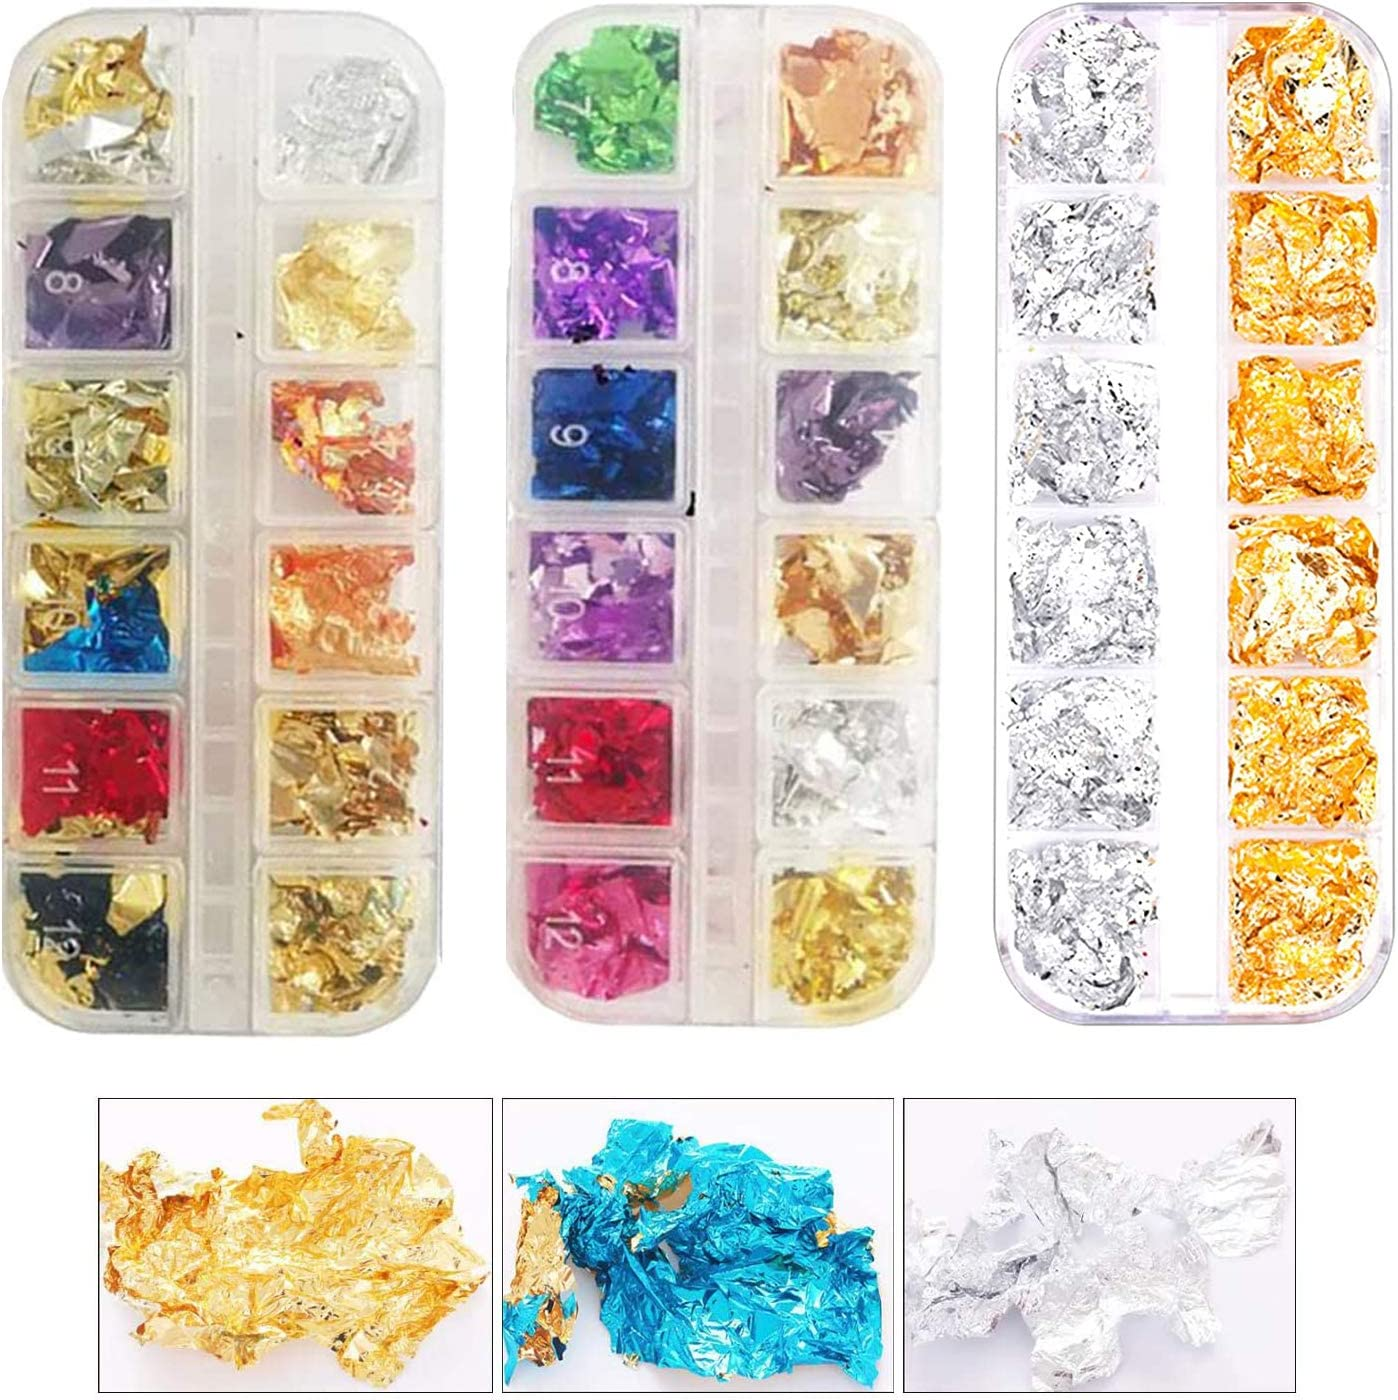 3 Packs Multi-Color Nail Foil Flakes Glitter Leaf Flakes Imitation Gold Metallic Foil Flakes for Painting Arts, Crafts Nails,DIYs,Furniture Decoration